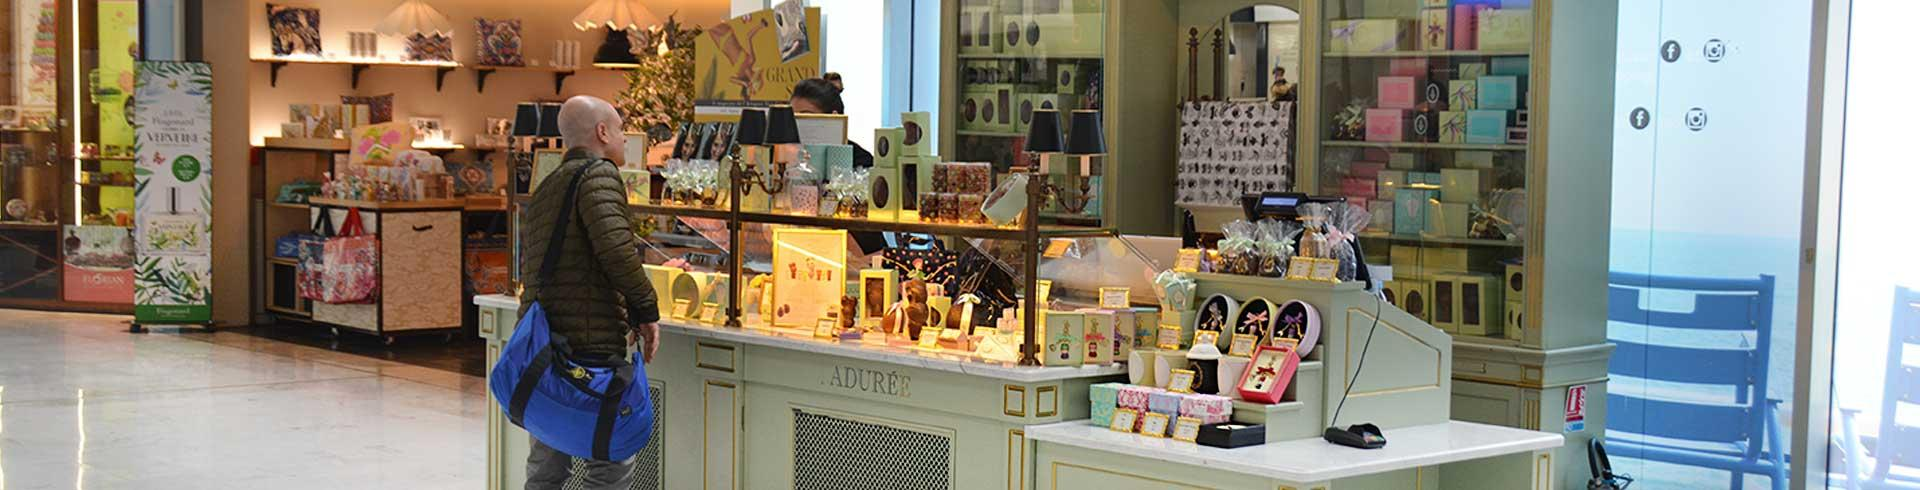 Ladurée the most Parisian of French tea rooms